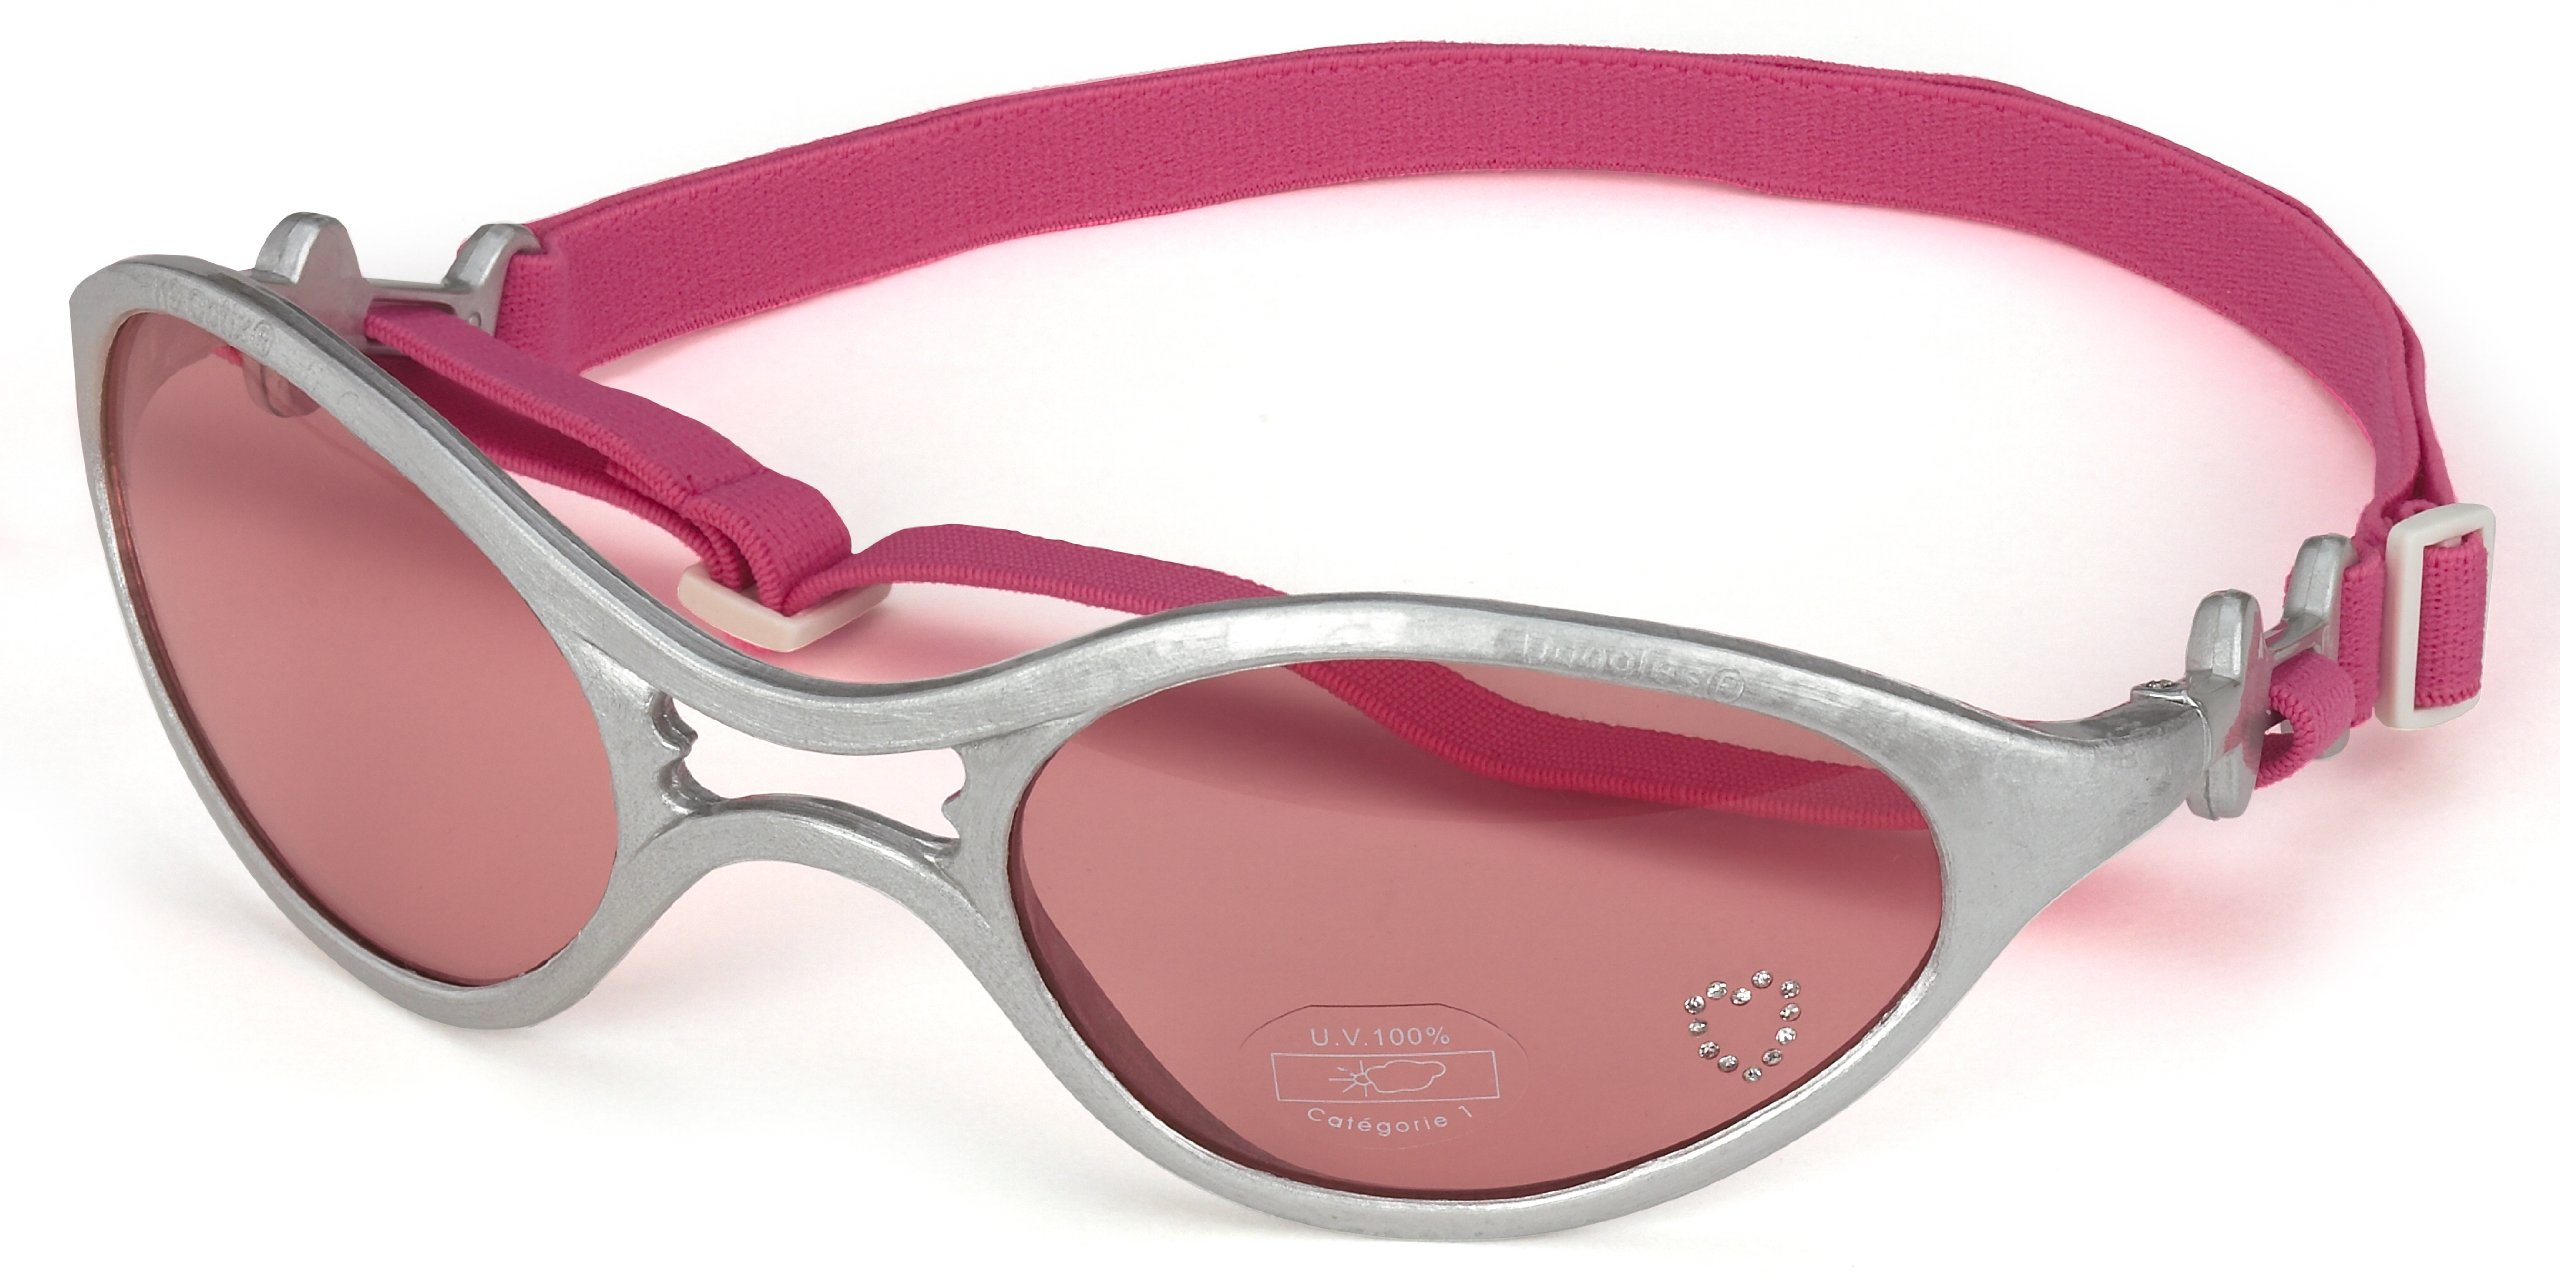 Doggles K9 Optix Shiny Silver Rubber Frame with Pink Lens Sunglasses, Medium